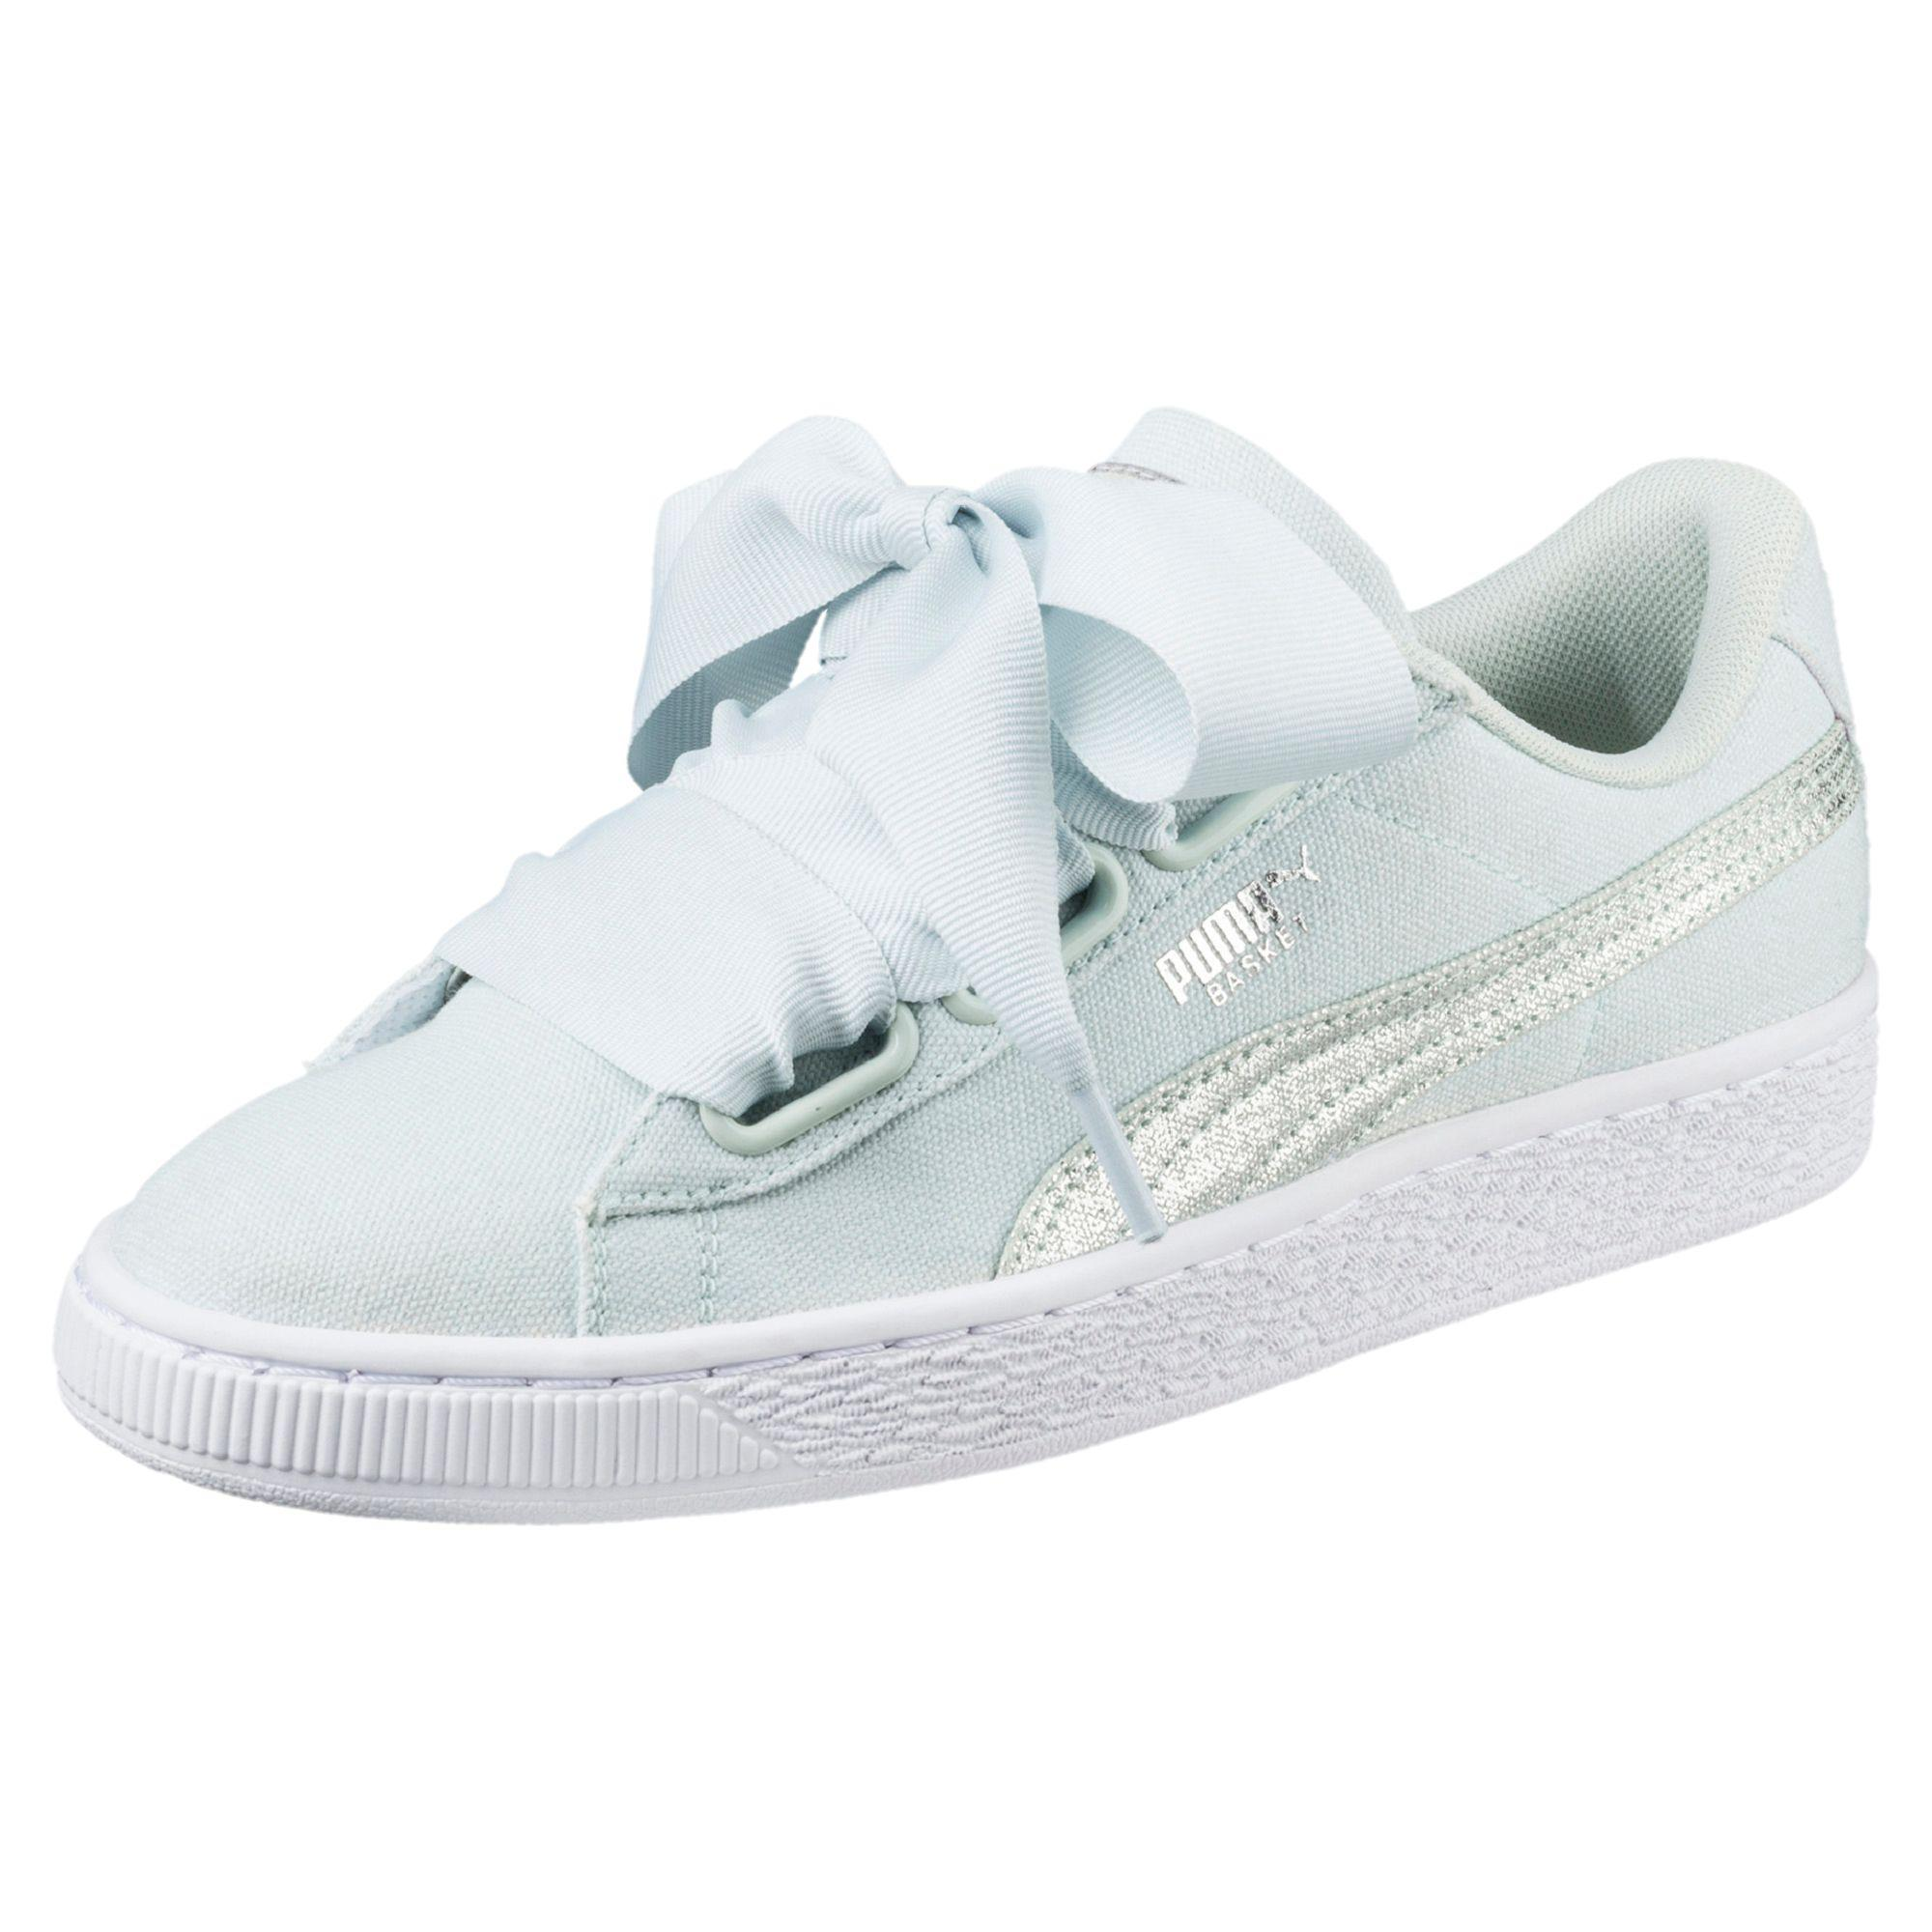 Alta qualit BASKET HEART CANVAS PUMA